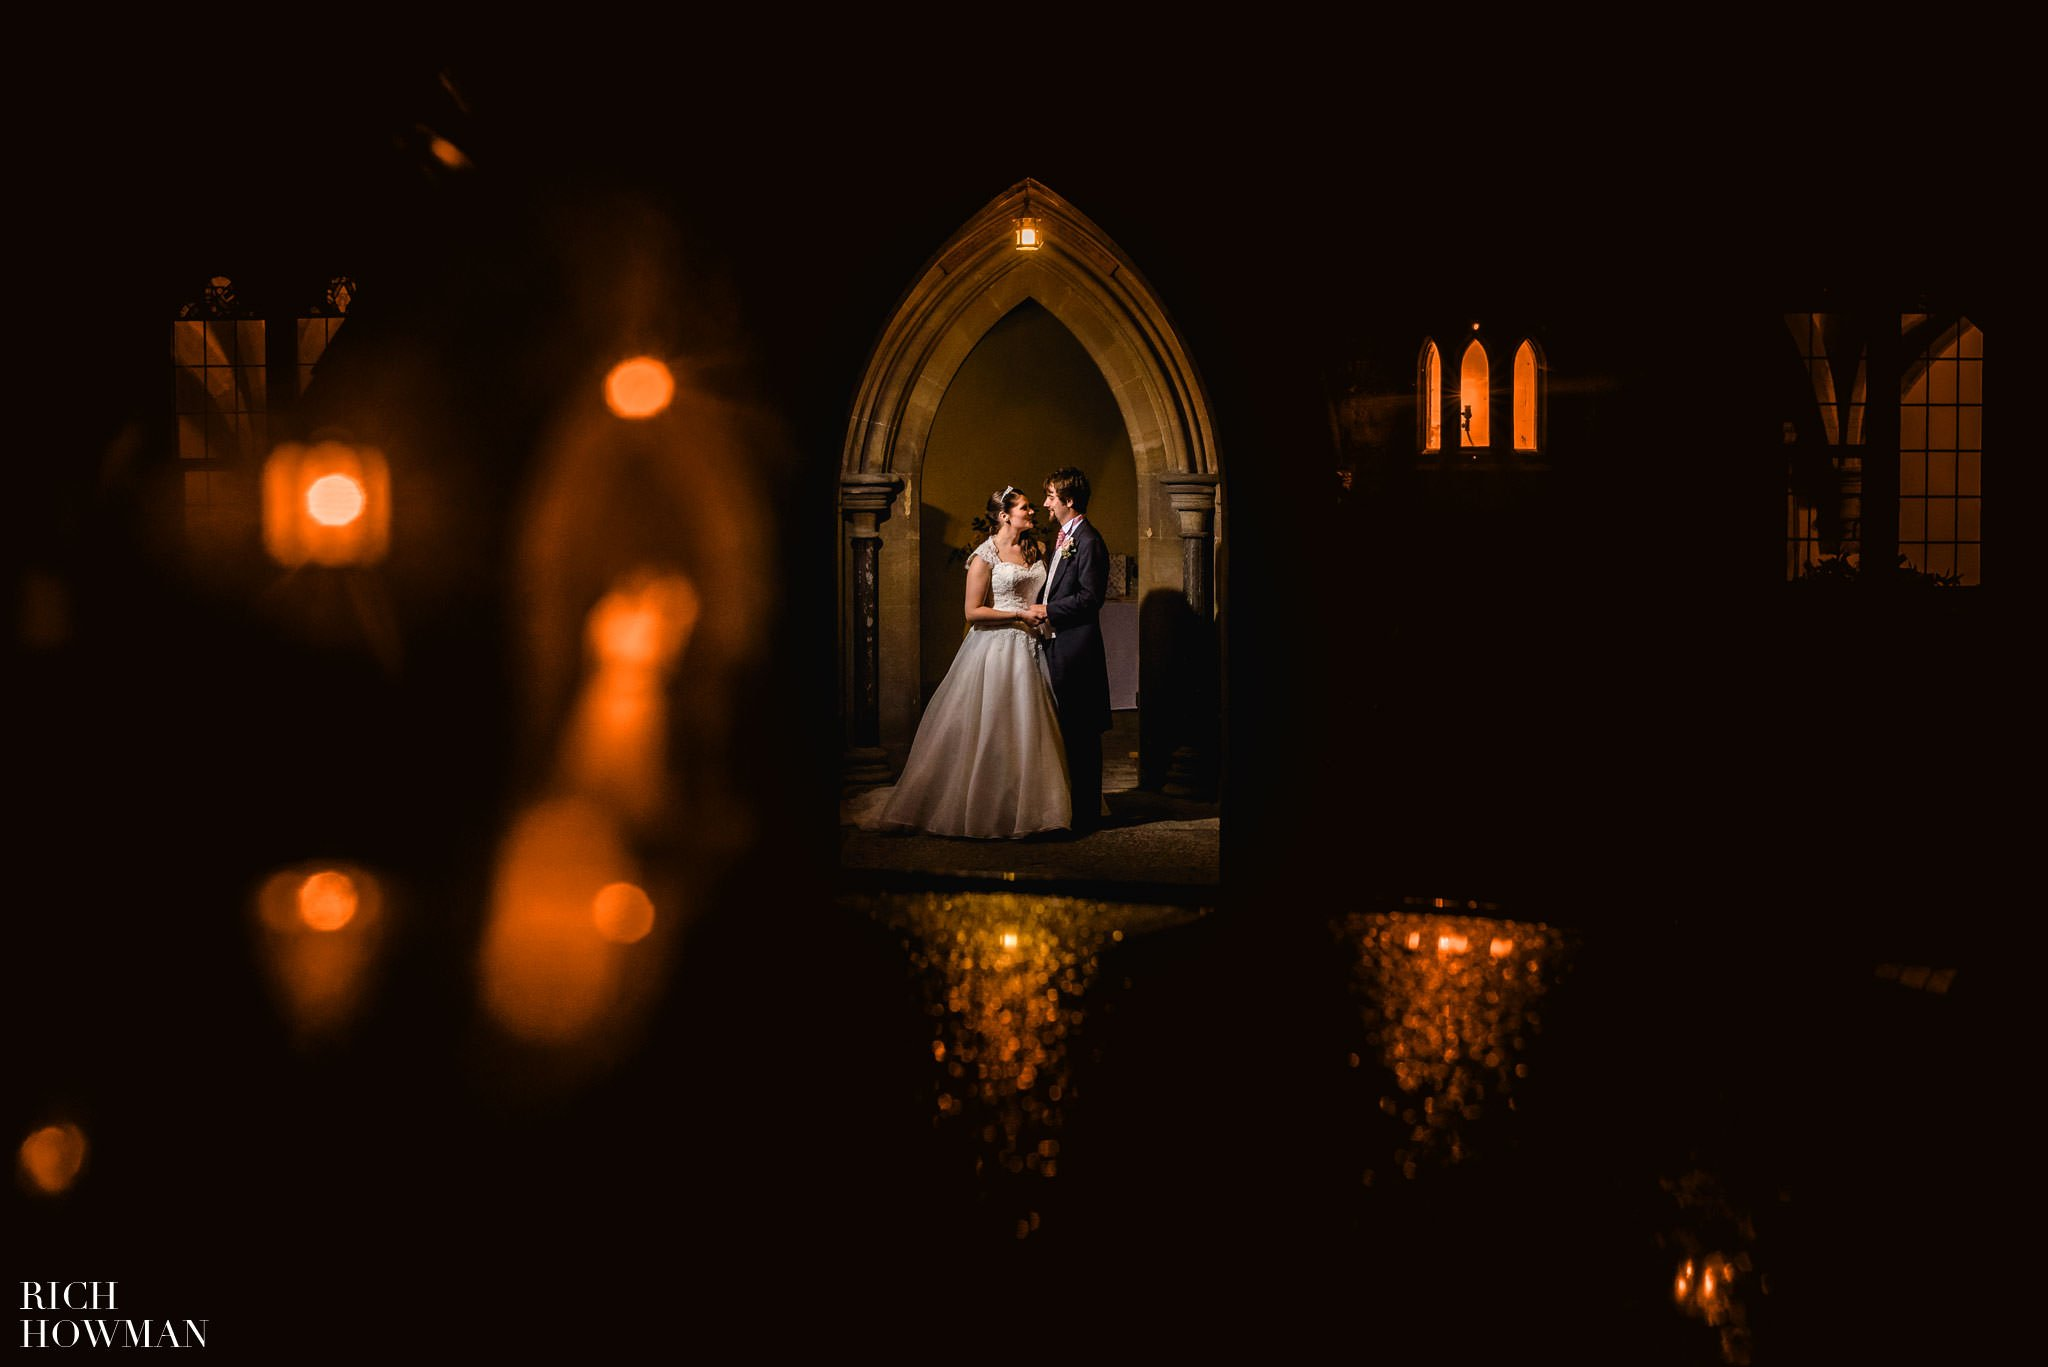 Creative portrait photograph of the bride and groom with light reflections